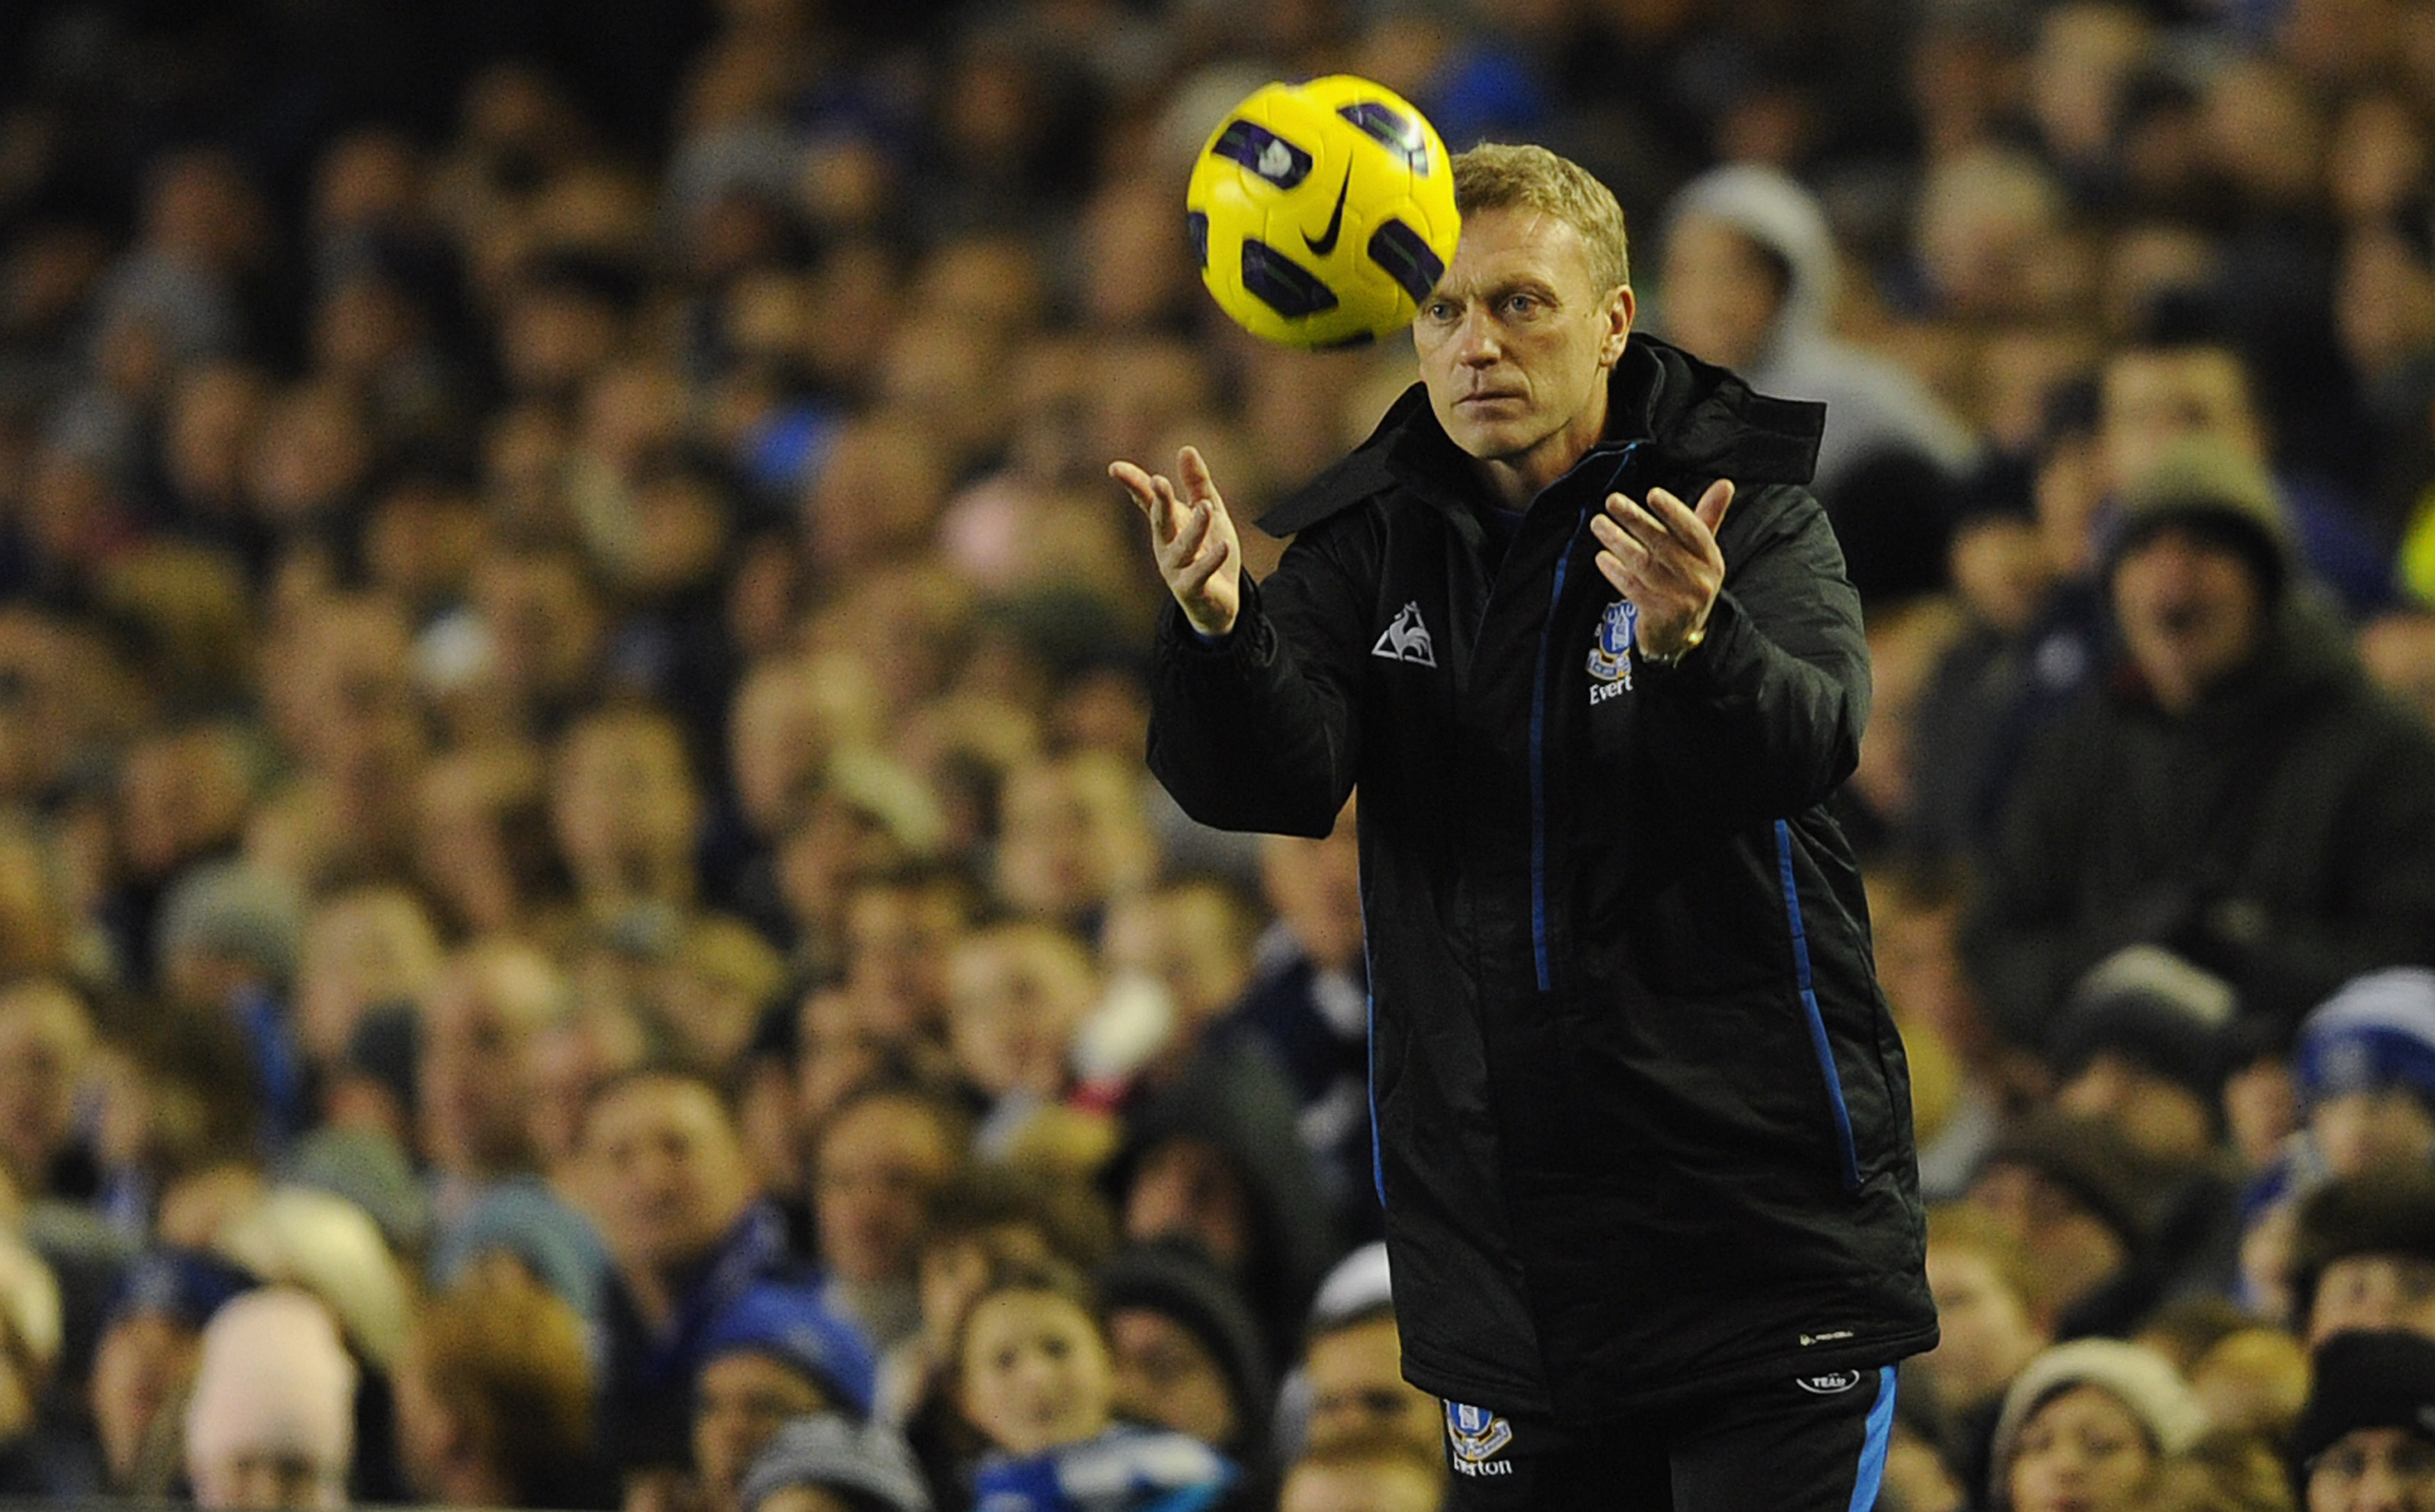 LIVERPOOL, ENGLAND - NOVEMBER 10: Everton manager David Moyes throws the ball during the Barclays Premier League match between Everton and Bolton Wanderers at Goodison Park on November 10, 2010 in Liverpool, England.  (Photo by Michael Regan/Getty Images)